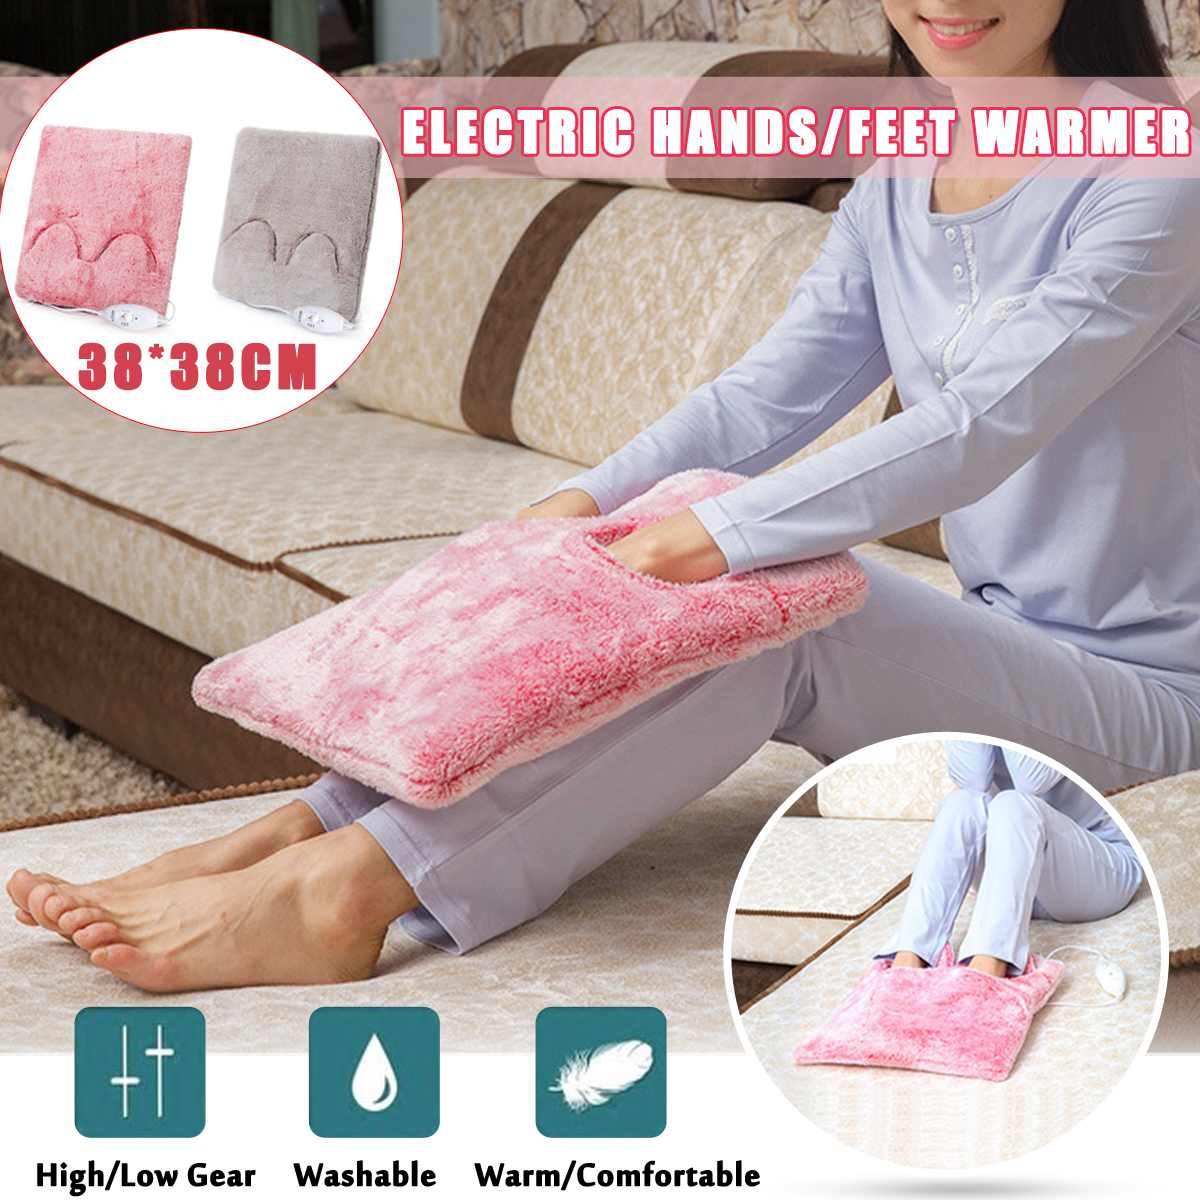 220V 20W Electric Heater Hands/Feet Warmer Pad Shoe Detachable Winter Stove Warming Slippers Seats Sofa Chair Warmer Cushion Mat